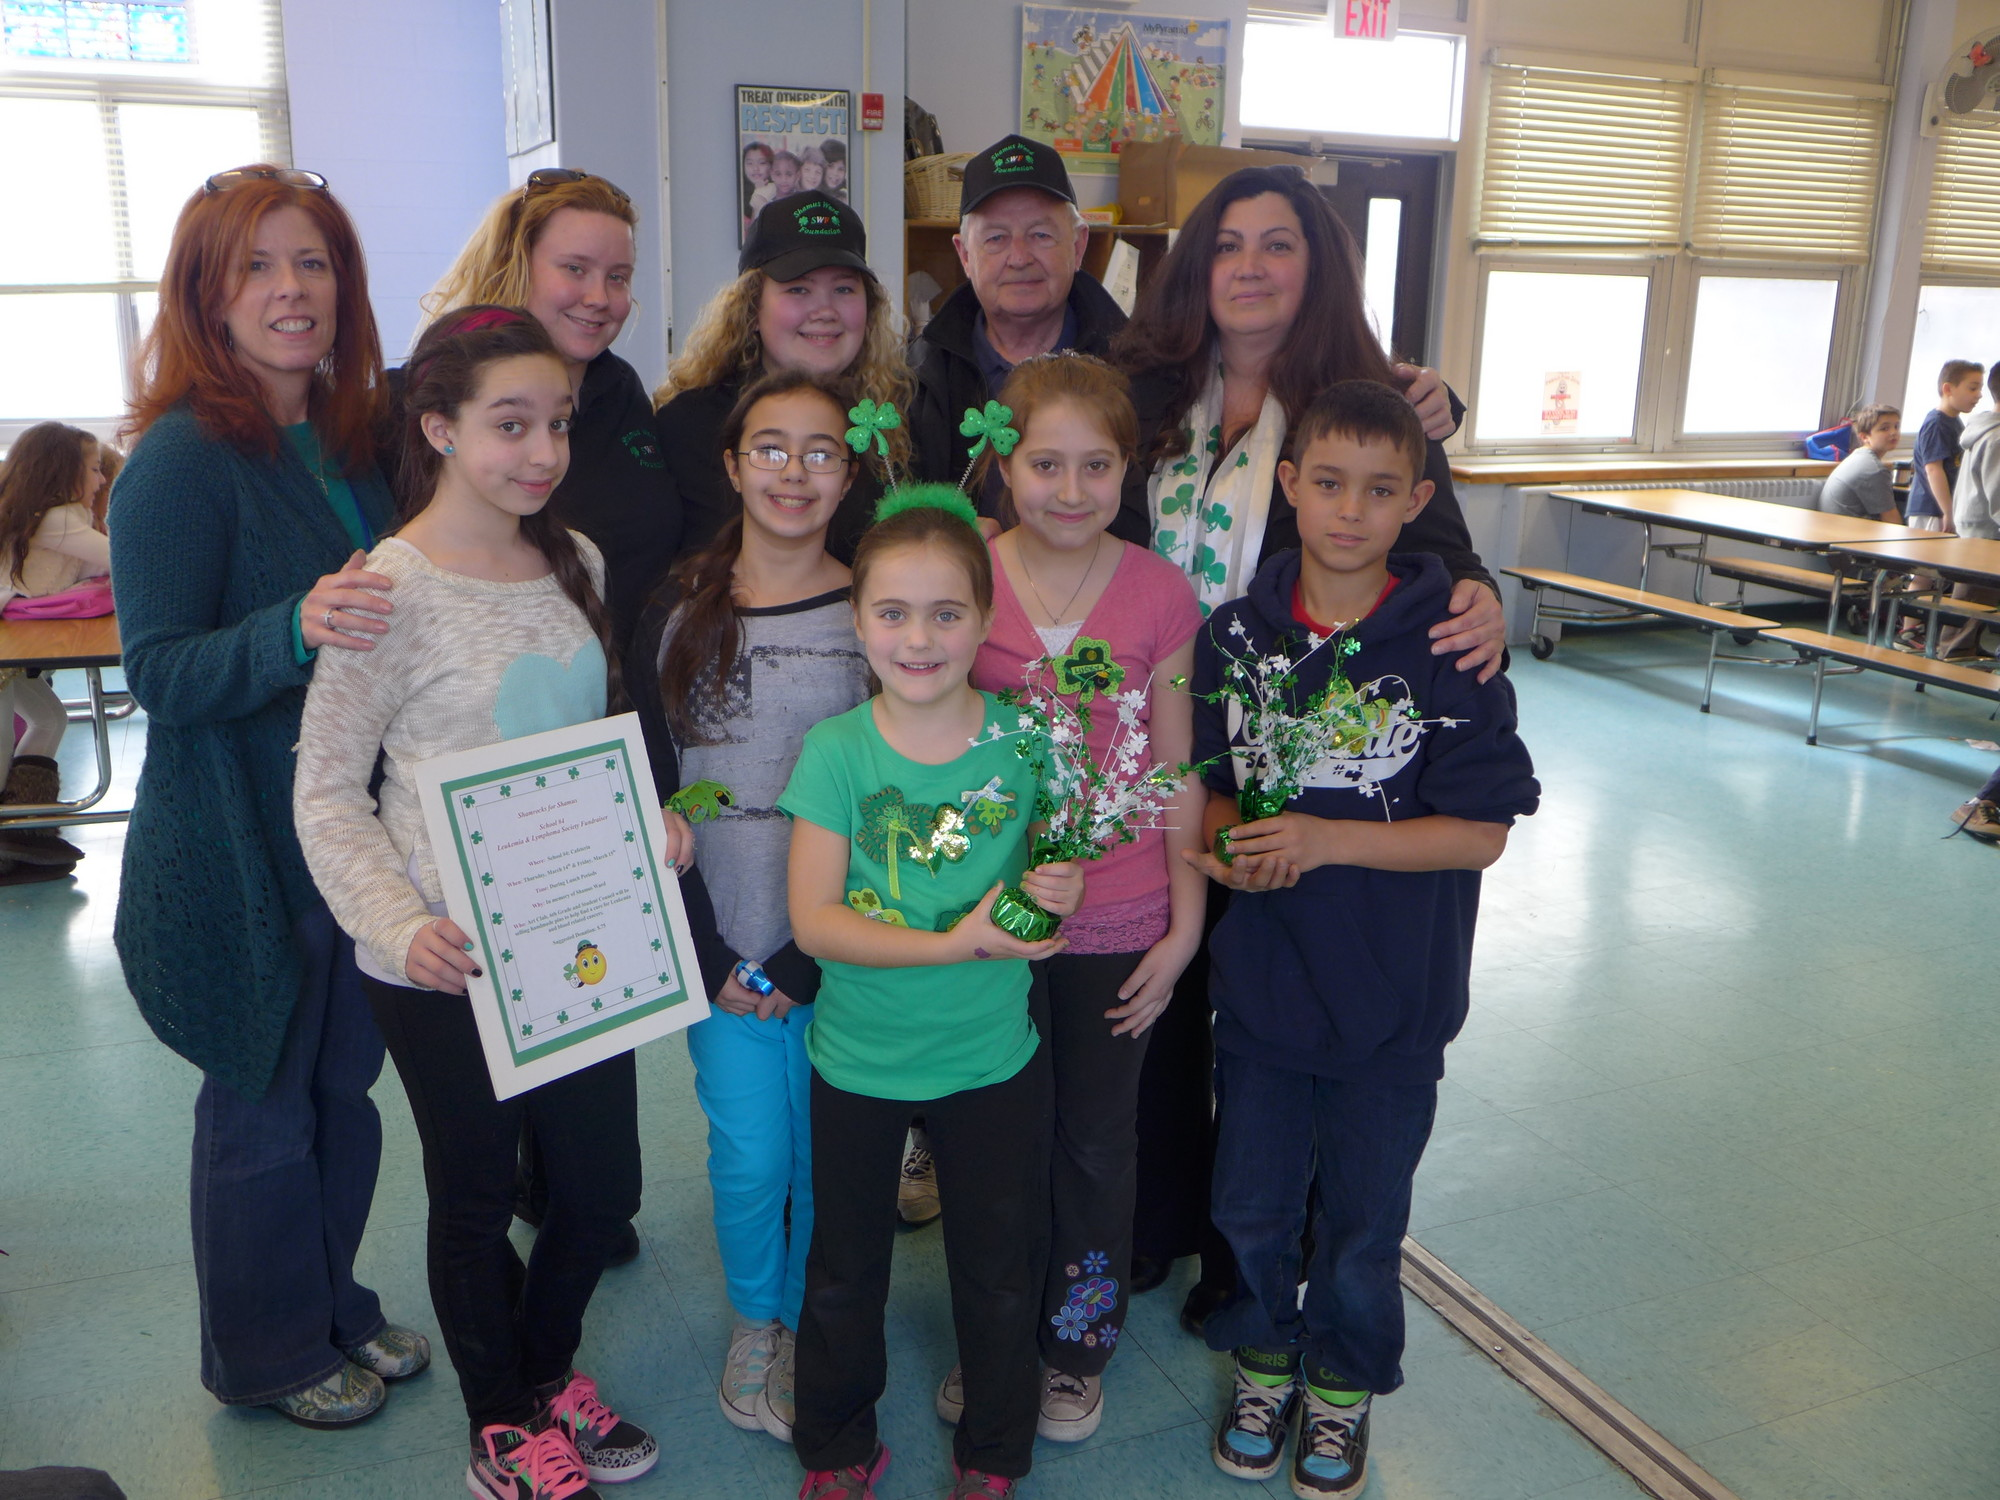 Shamus' family visited School #4 today to thank the students for remembering Shamus and supporting the Leukemia and Lymphoma Society. Jean Marie Toy, School #4 art teacher, Amy Greenberg, Ward family friend, Nicole Ward, Shamus' sister, James O'Sullivan, Shamus' grandfather, Rose, Ward, Shamus' mom, Darlene Salcedo, Elia Ridi, May Brintouch and Jeffrey Mizrachi, 6th grade art students and (front, center) Megan Geraghty-Checola, 2nd grader